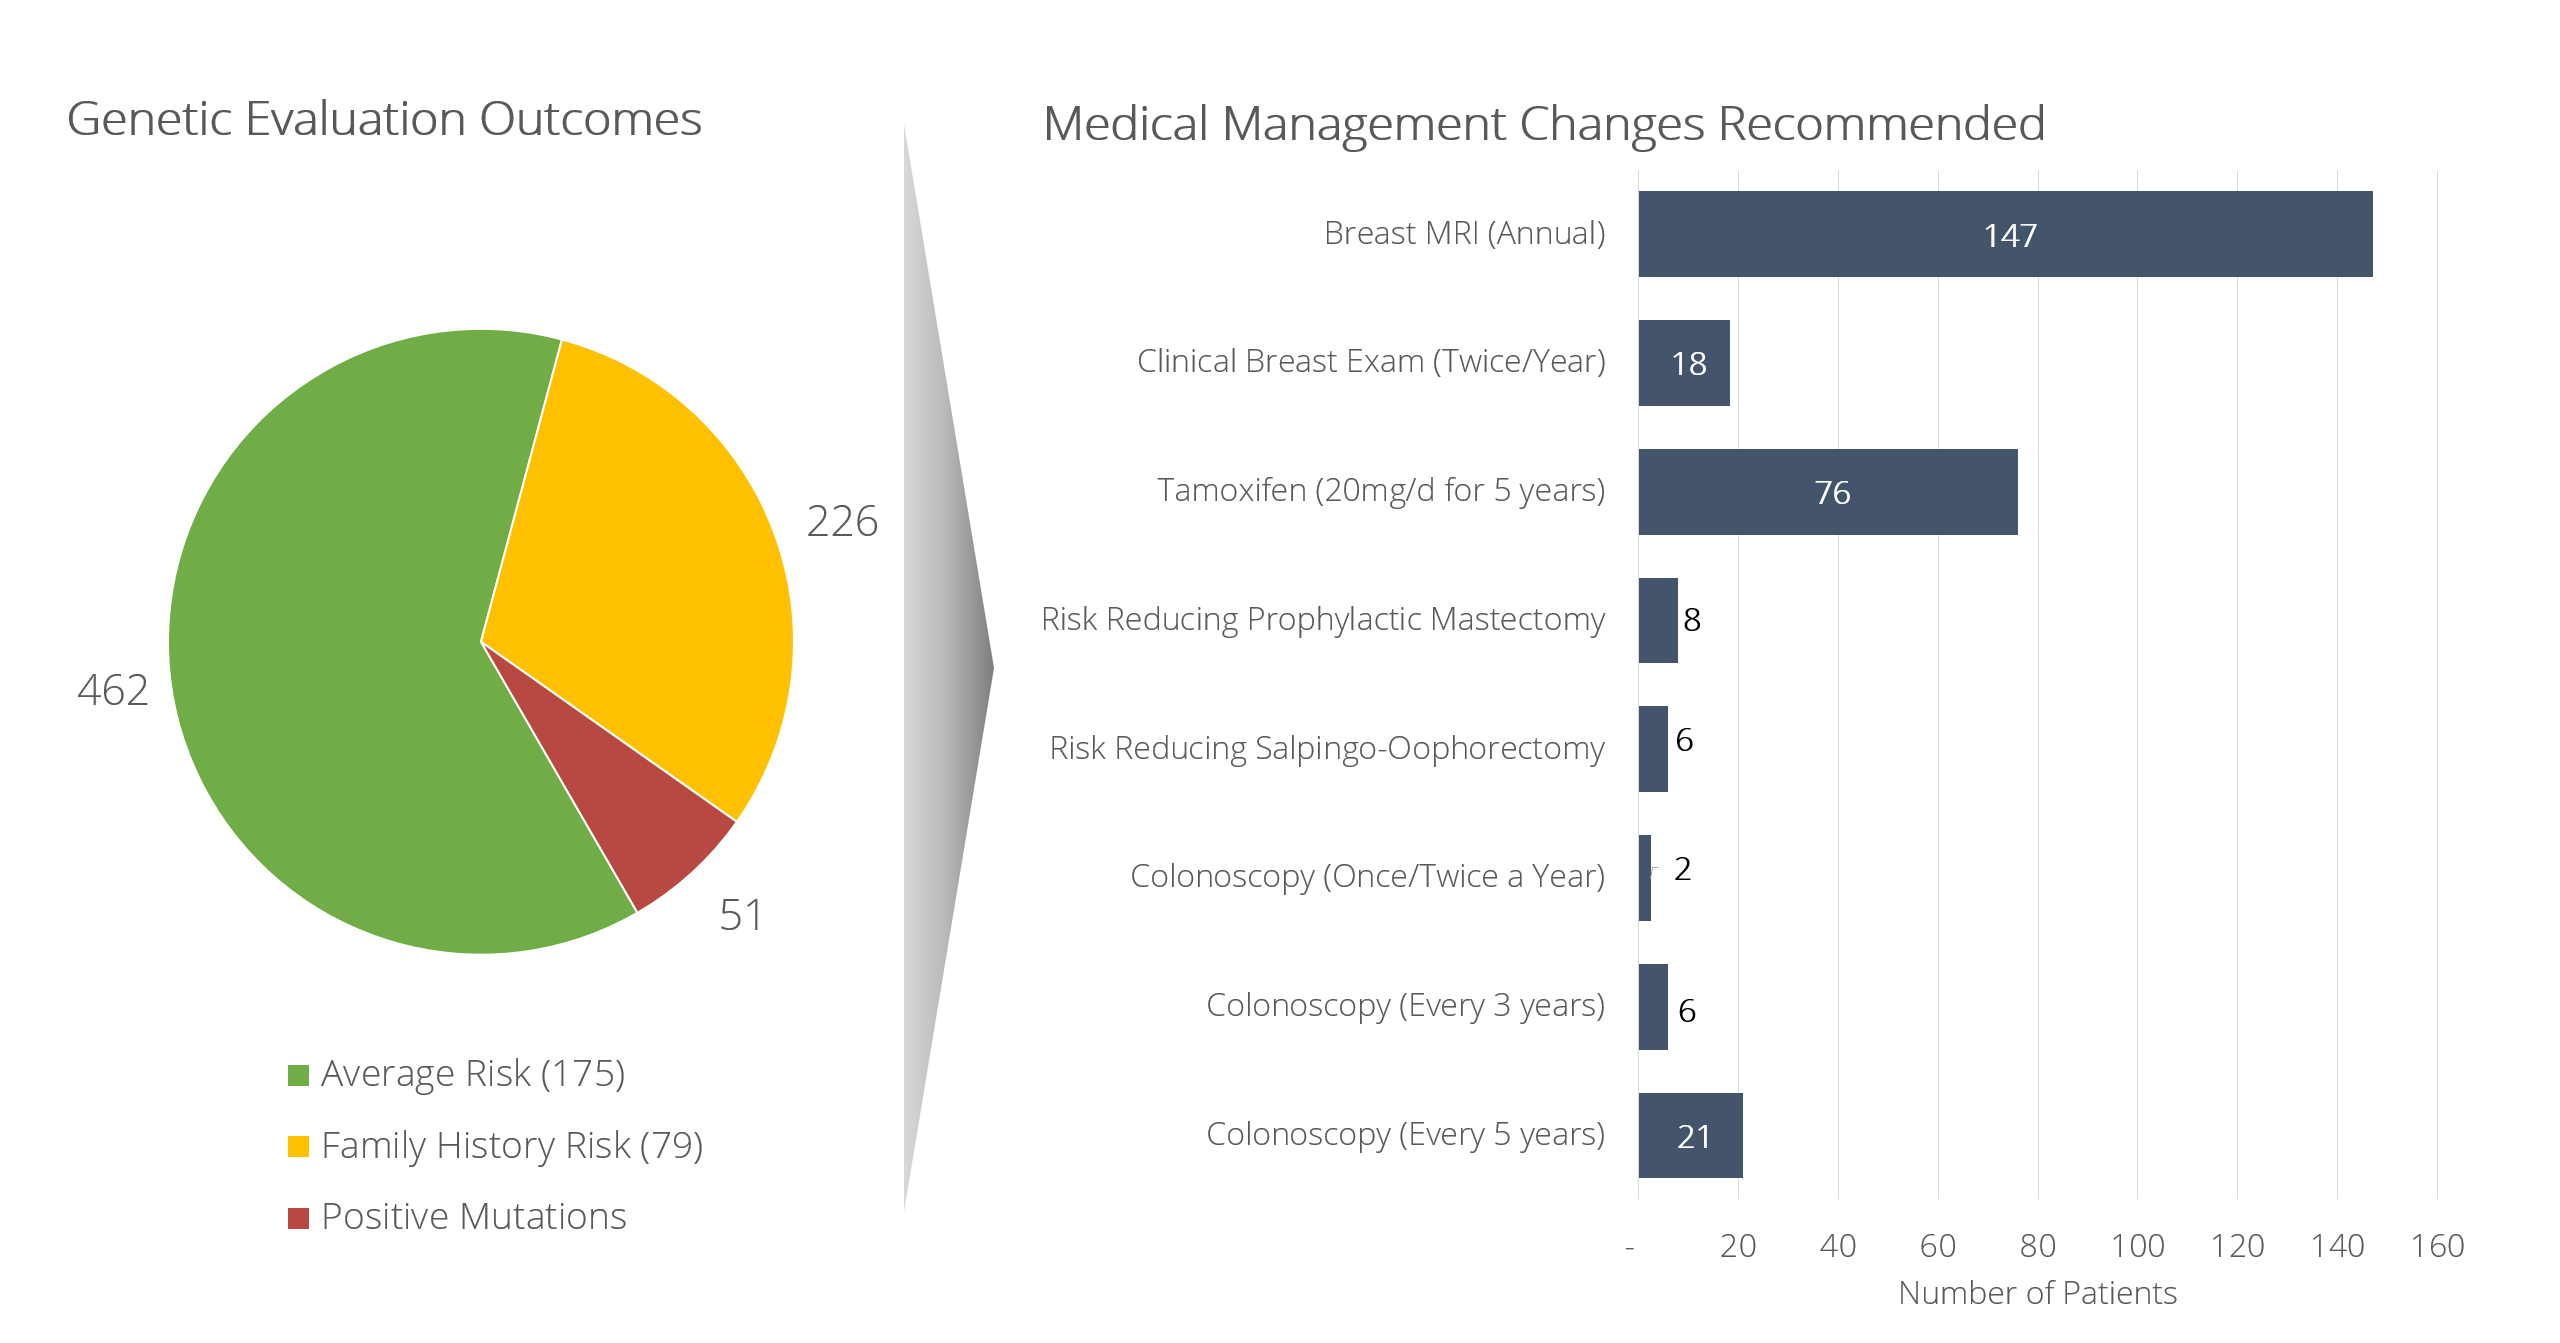 Manage Patients According to myRisk Results